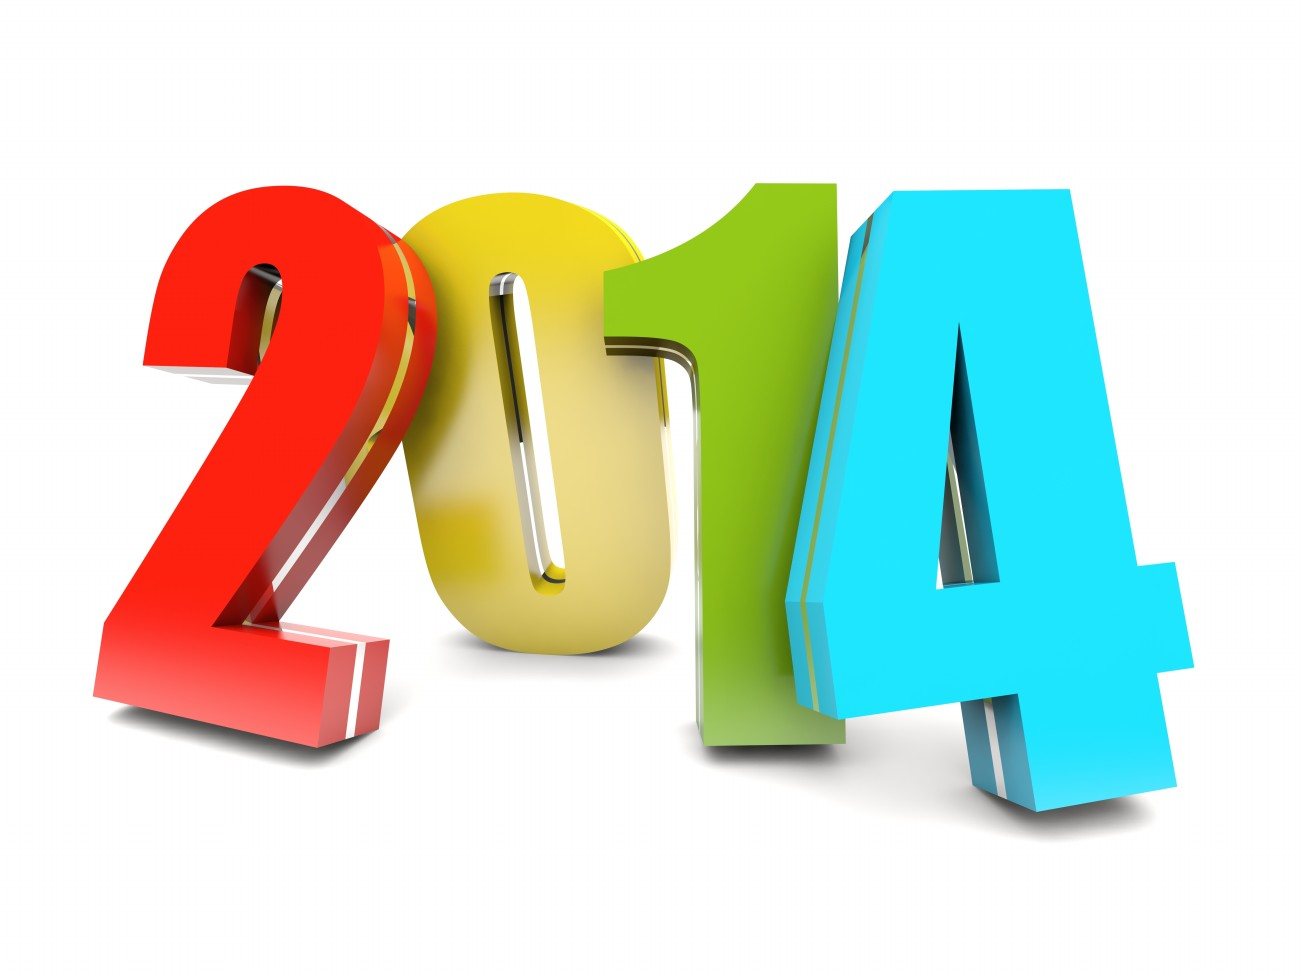 2014-numbers-happy-2014-wallpaper-new-year-image.jpg